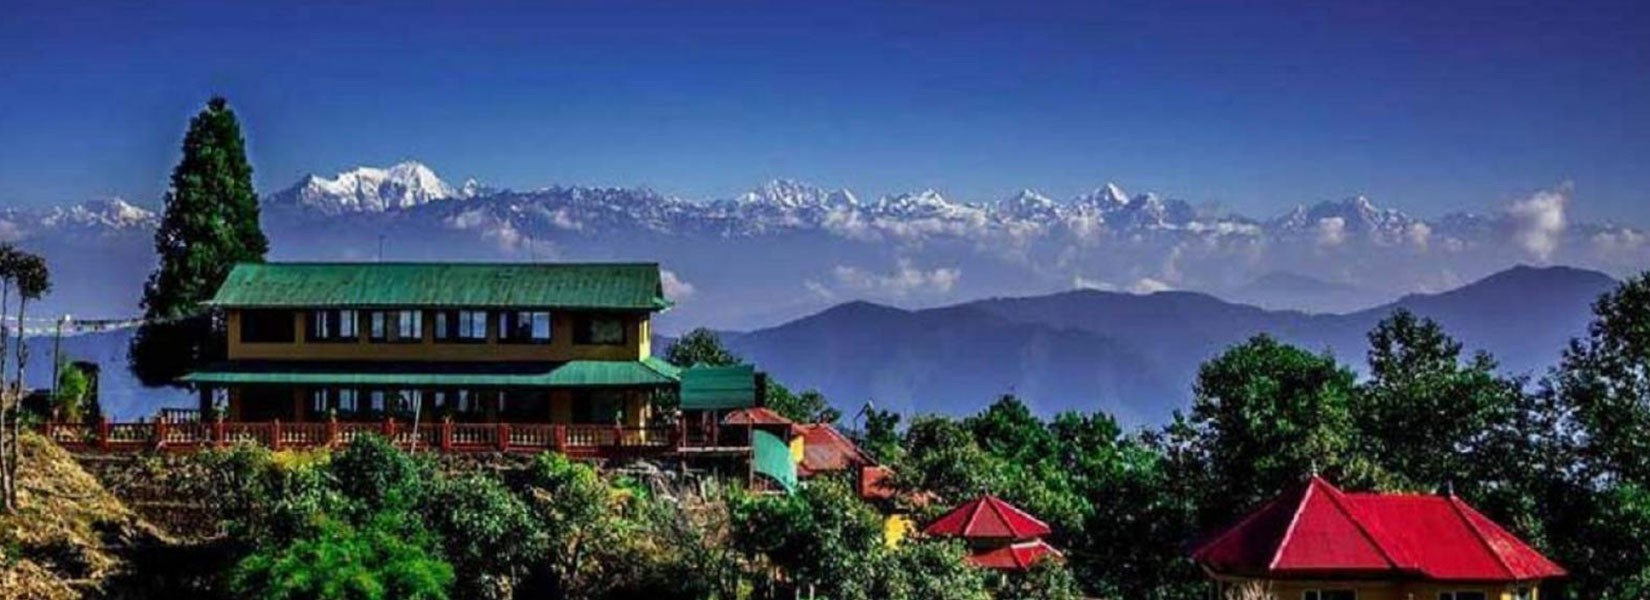 What Are The Best Seasons To Go Trekking In Nepal?